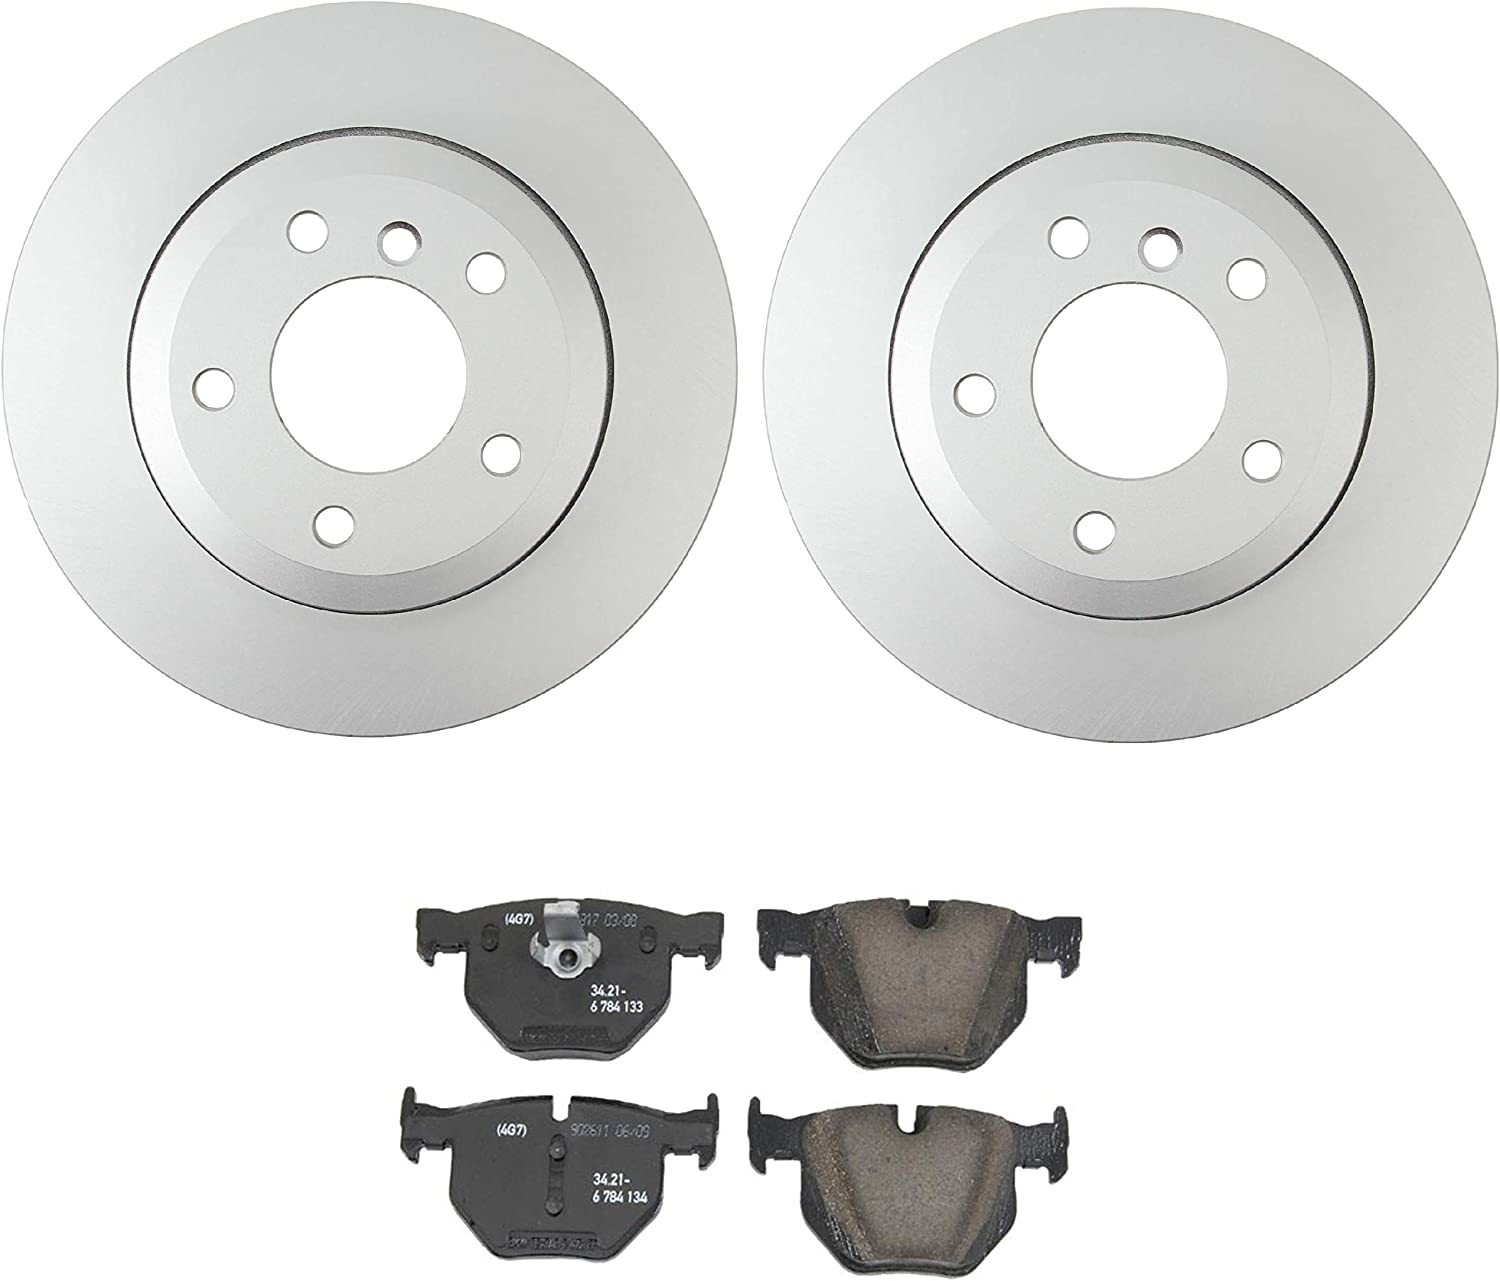 NEW Genuine Ranking TOP13 Rear Brake Kit Disc Rotors BMW Chicago Mall and Pads 528i For E60